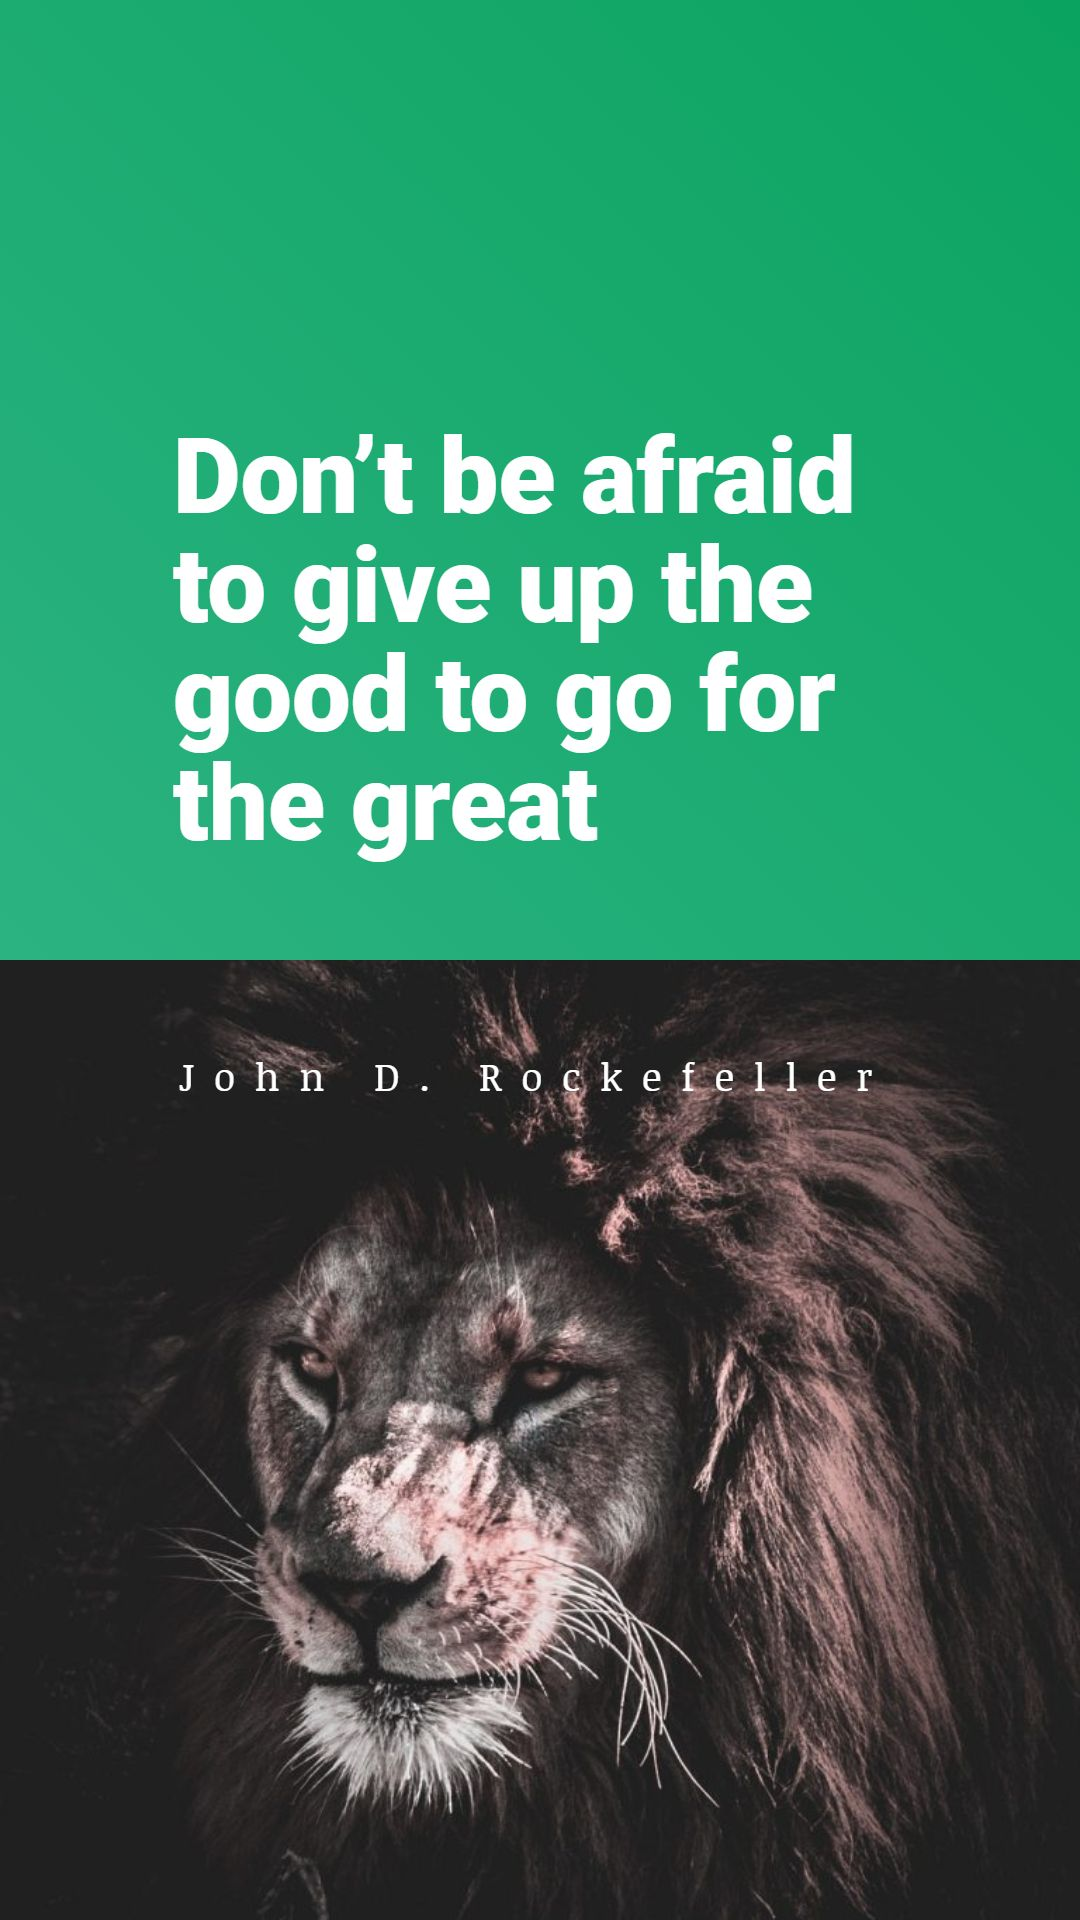 Quotes image of Don't be afraid to give up the good to go for the great